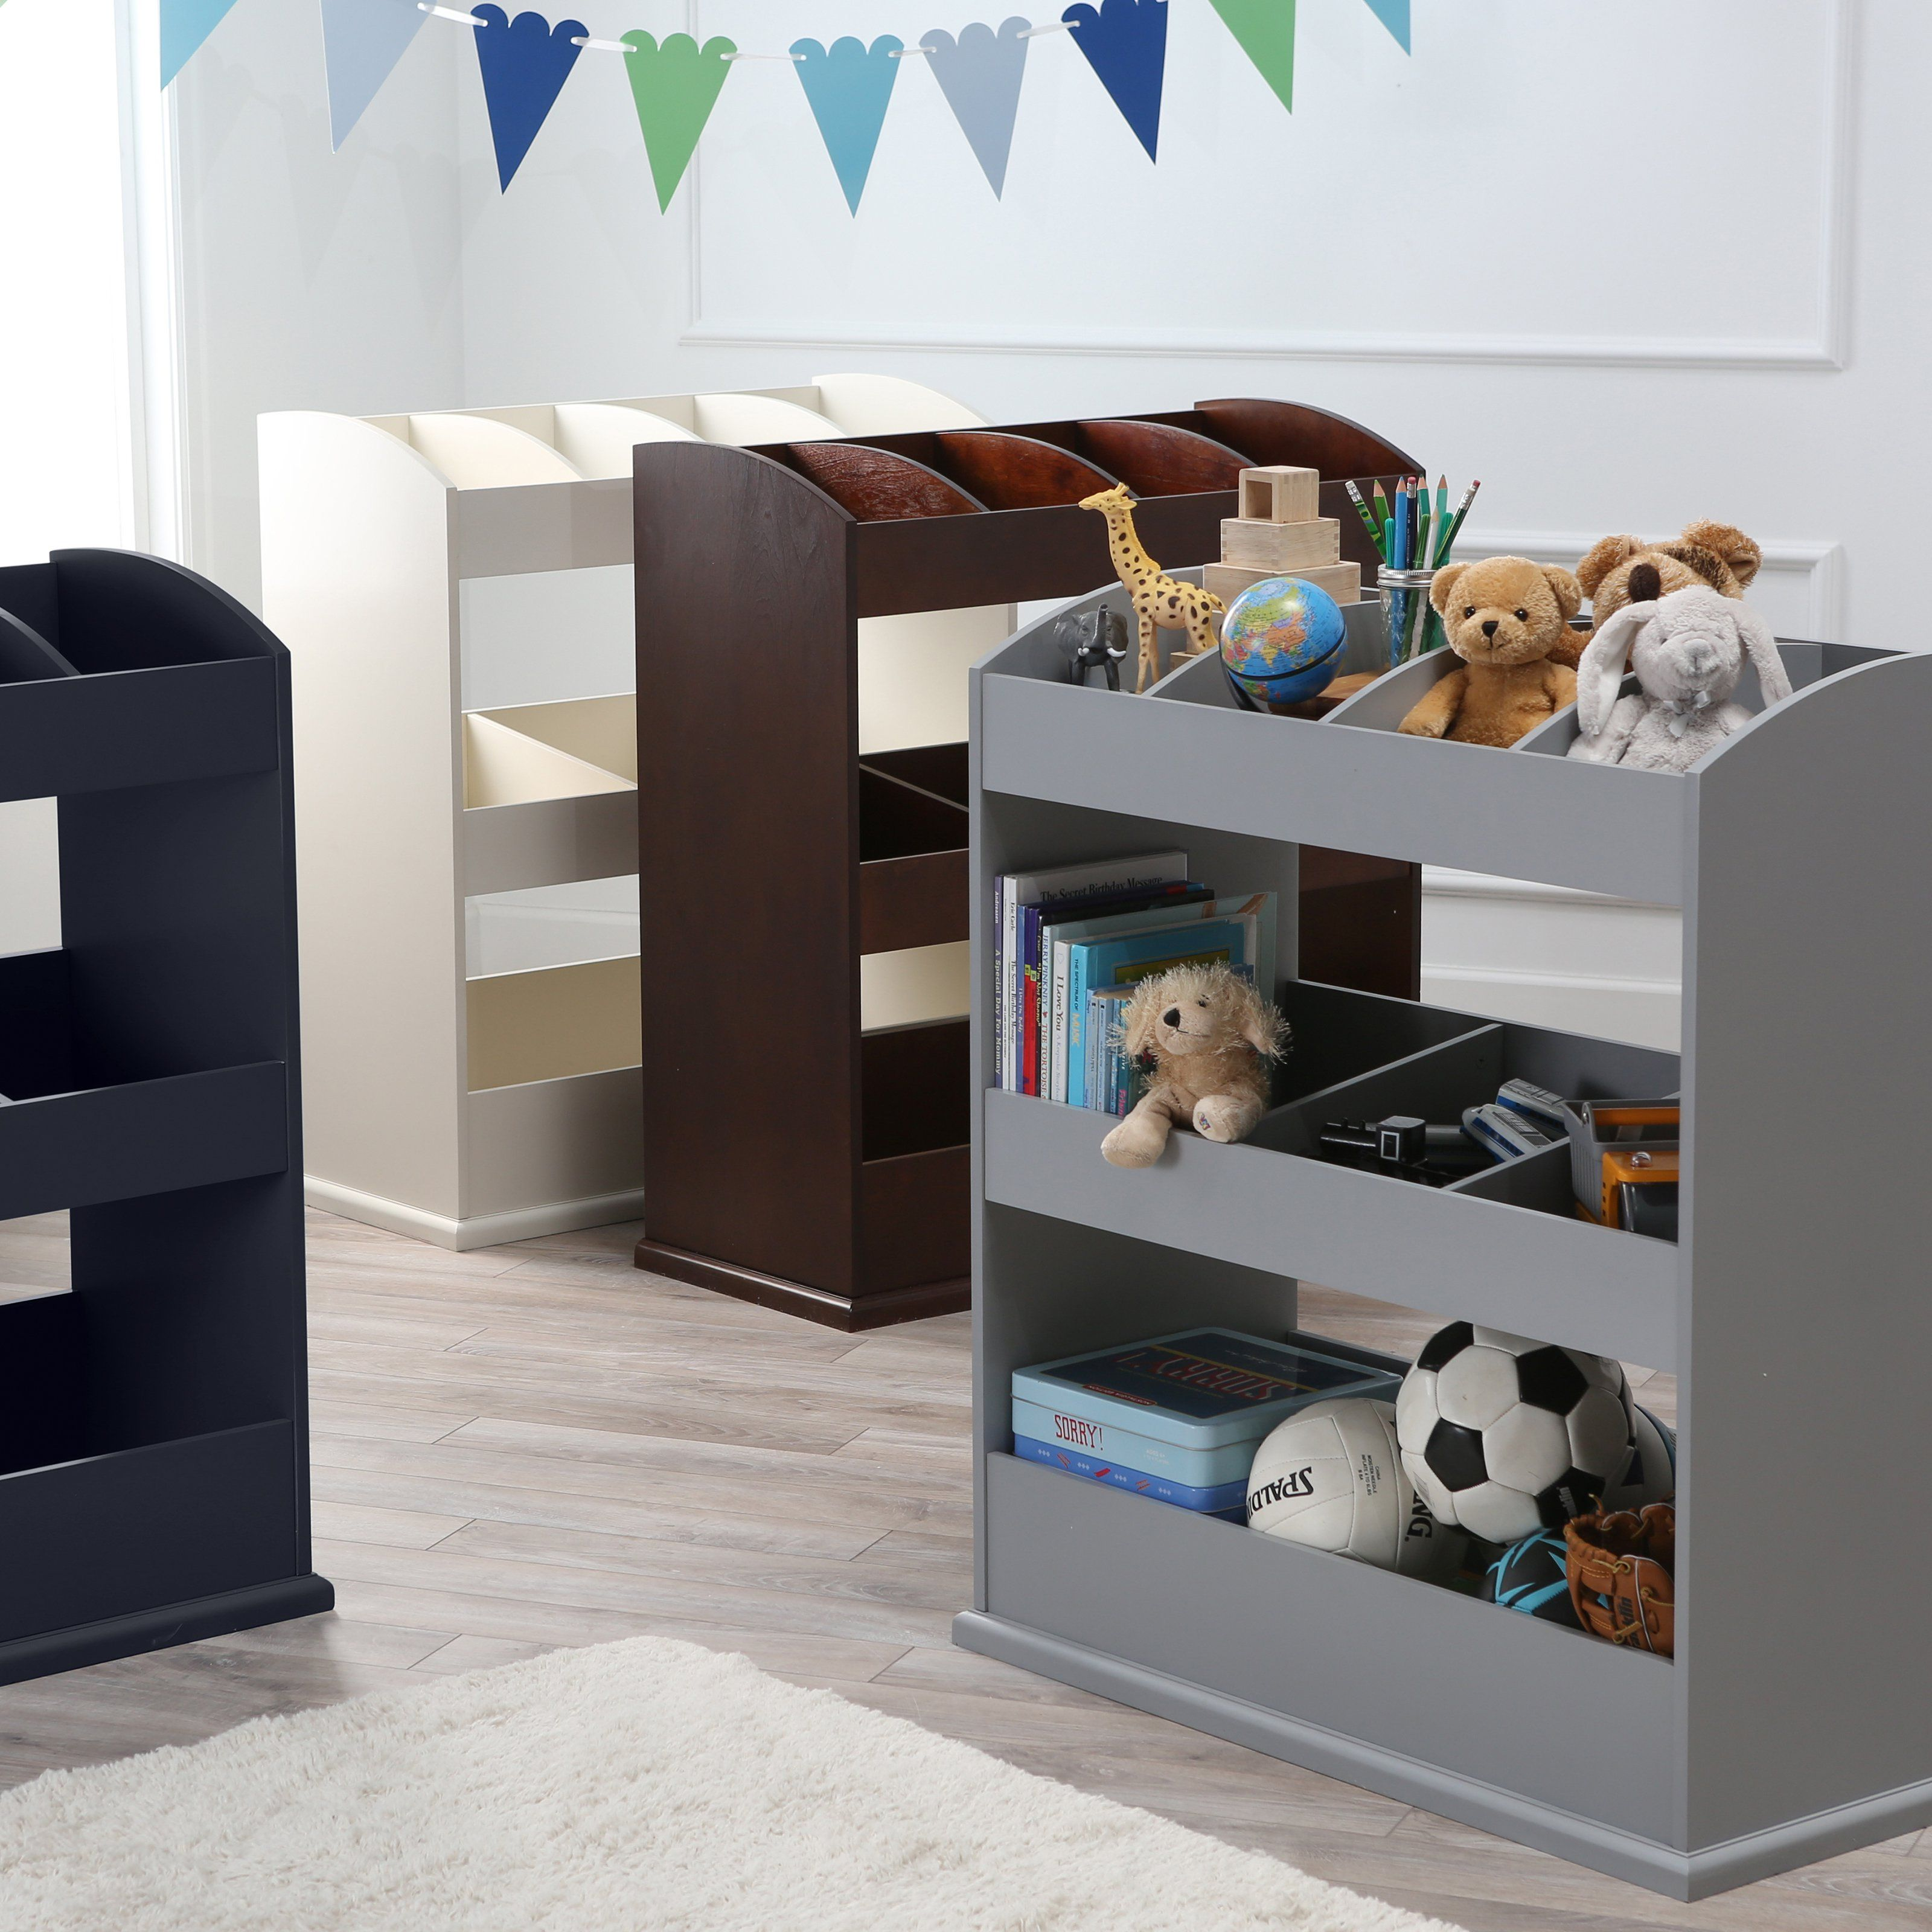 Create A Montessori Style Environment At Home With The Classic Playtime  Freestanding Toy Organizer .